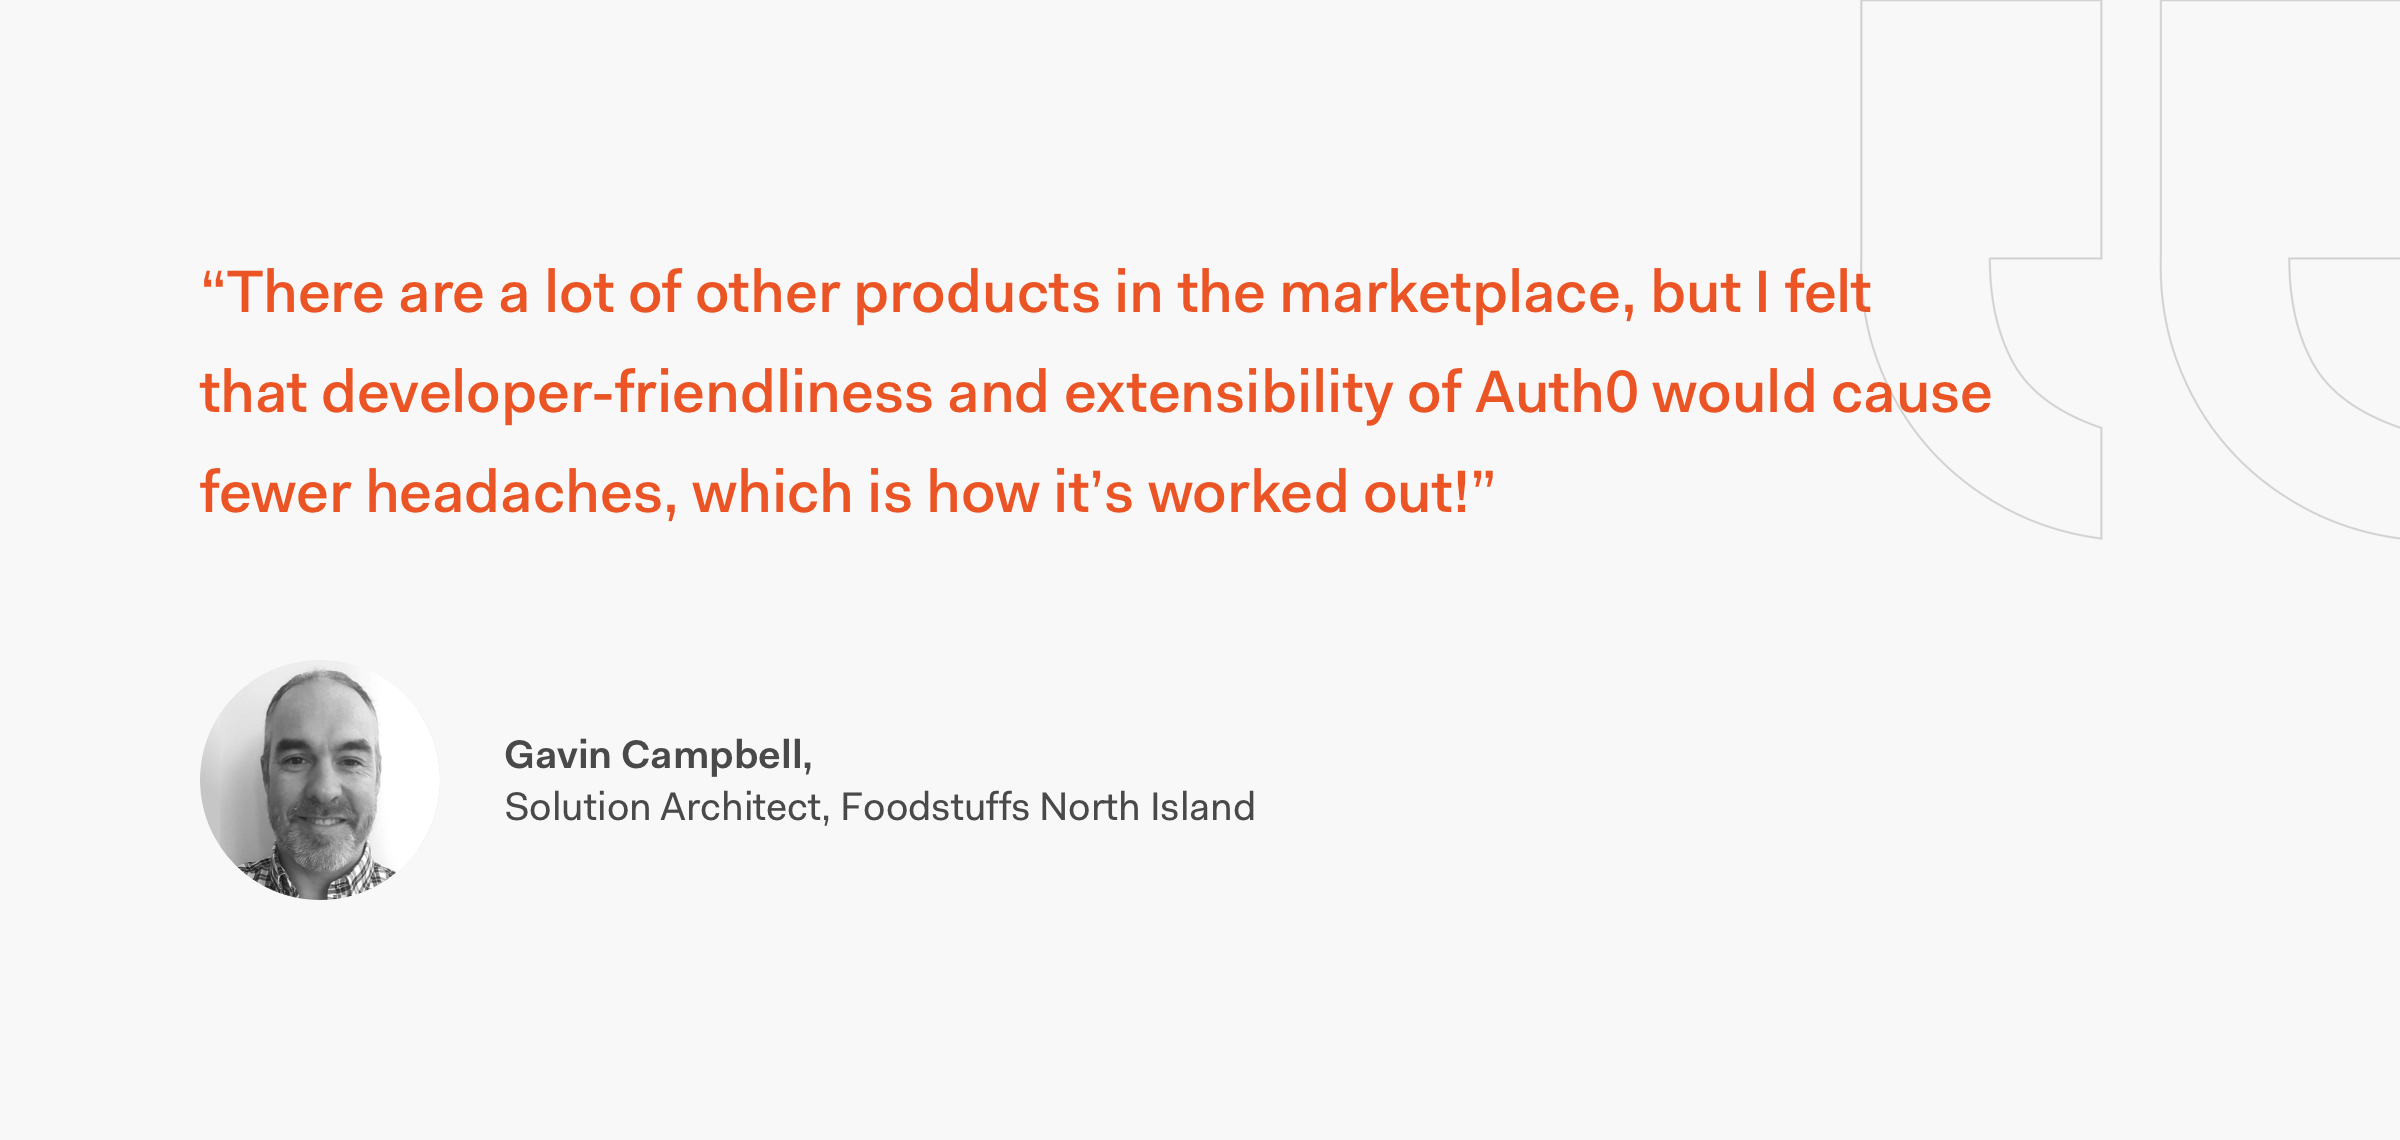 Foodstuffs North Island Gavin Campbell Quote